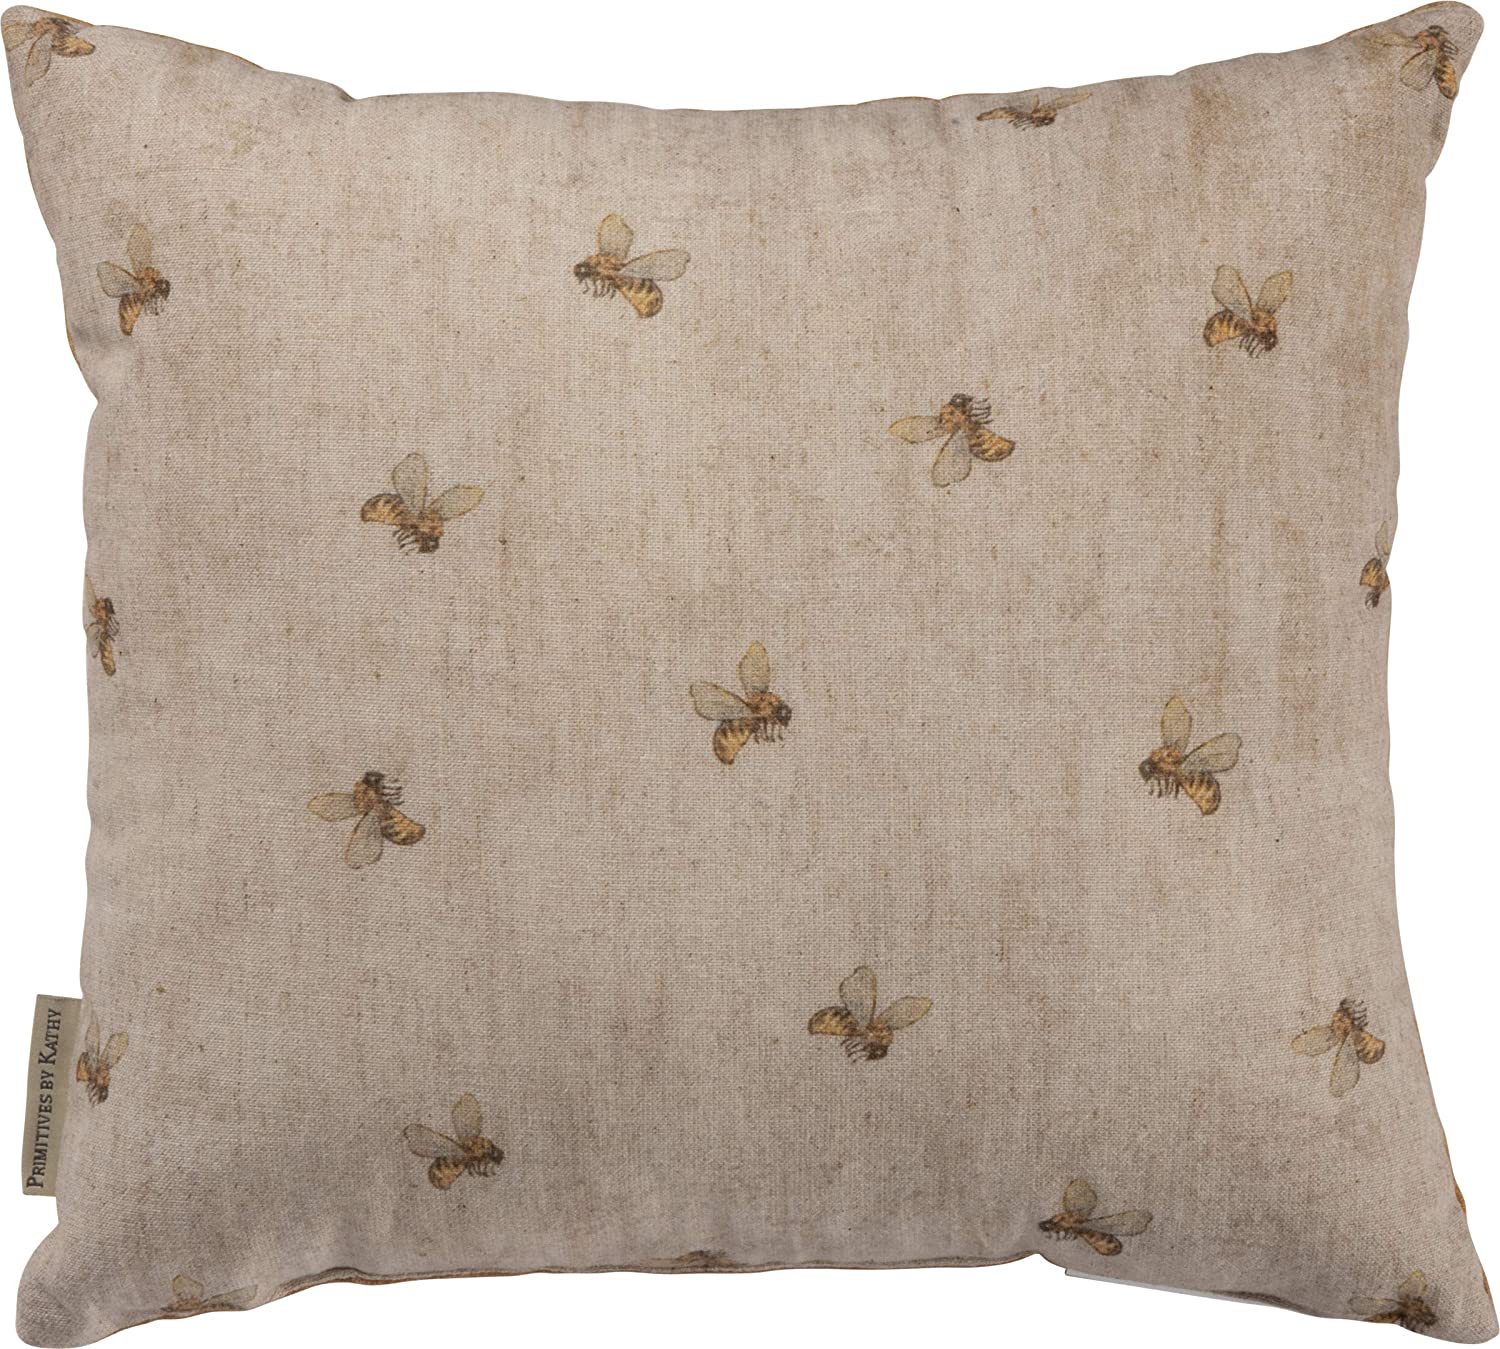 Primitives by Kathy Farmhouse Feedsack Throw Pillow, 14 x 13-Inches, Honey Bee